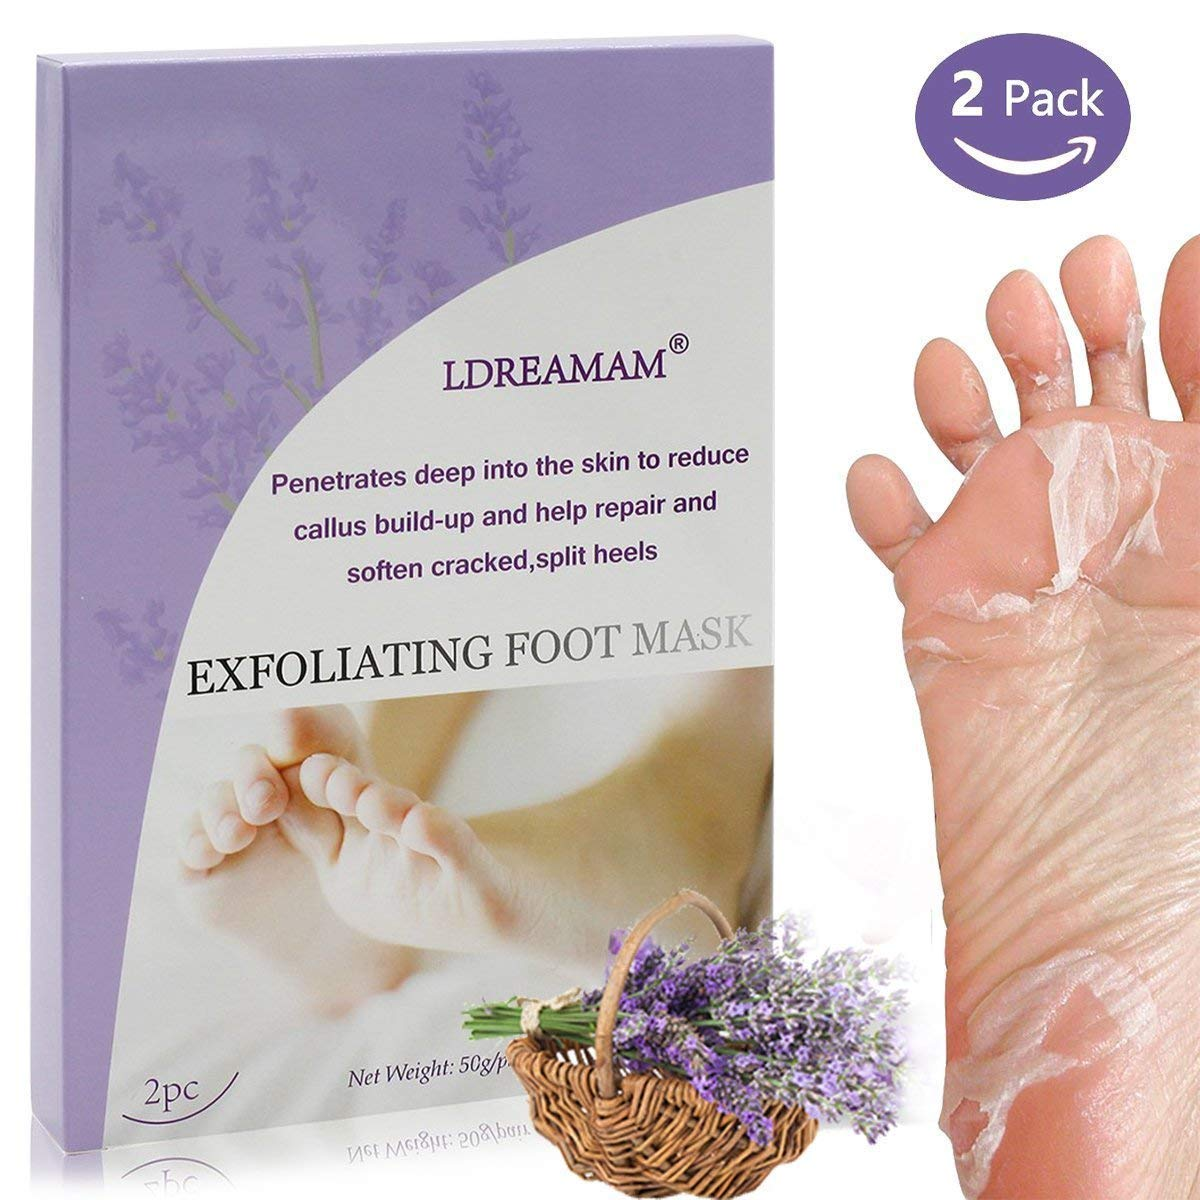 Foot Peel Mask, Baby Foot Exfoliating, Foot Peeling Socks, Feet Peeling away Calluses Dead Skin Remover Foot Exfoliator Gel Socks with Natural Lavender Extract Make Your Feet Baby Soft - 2 Pack LDREAMAM